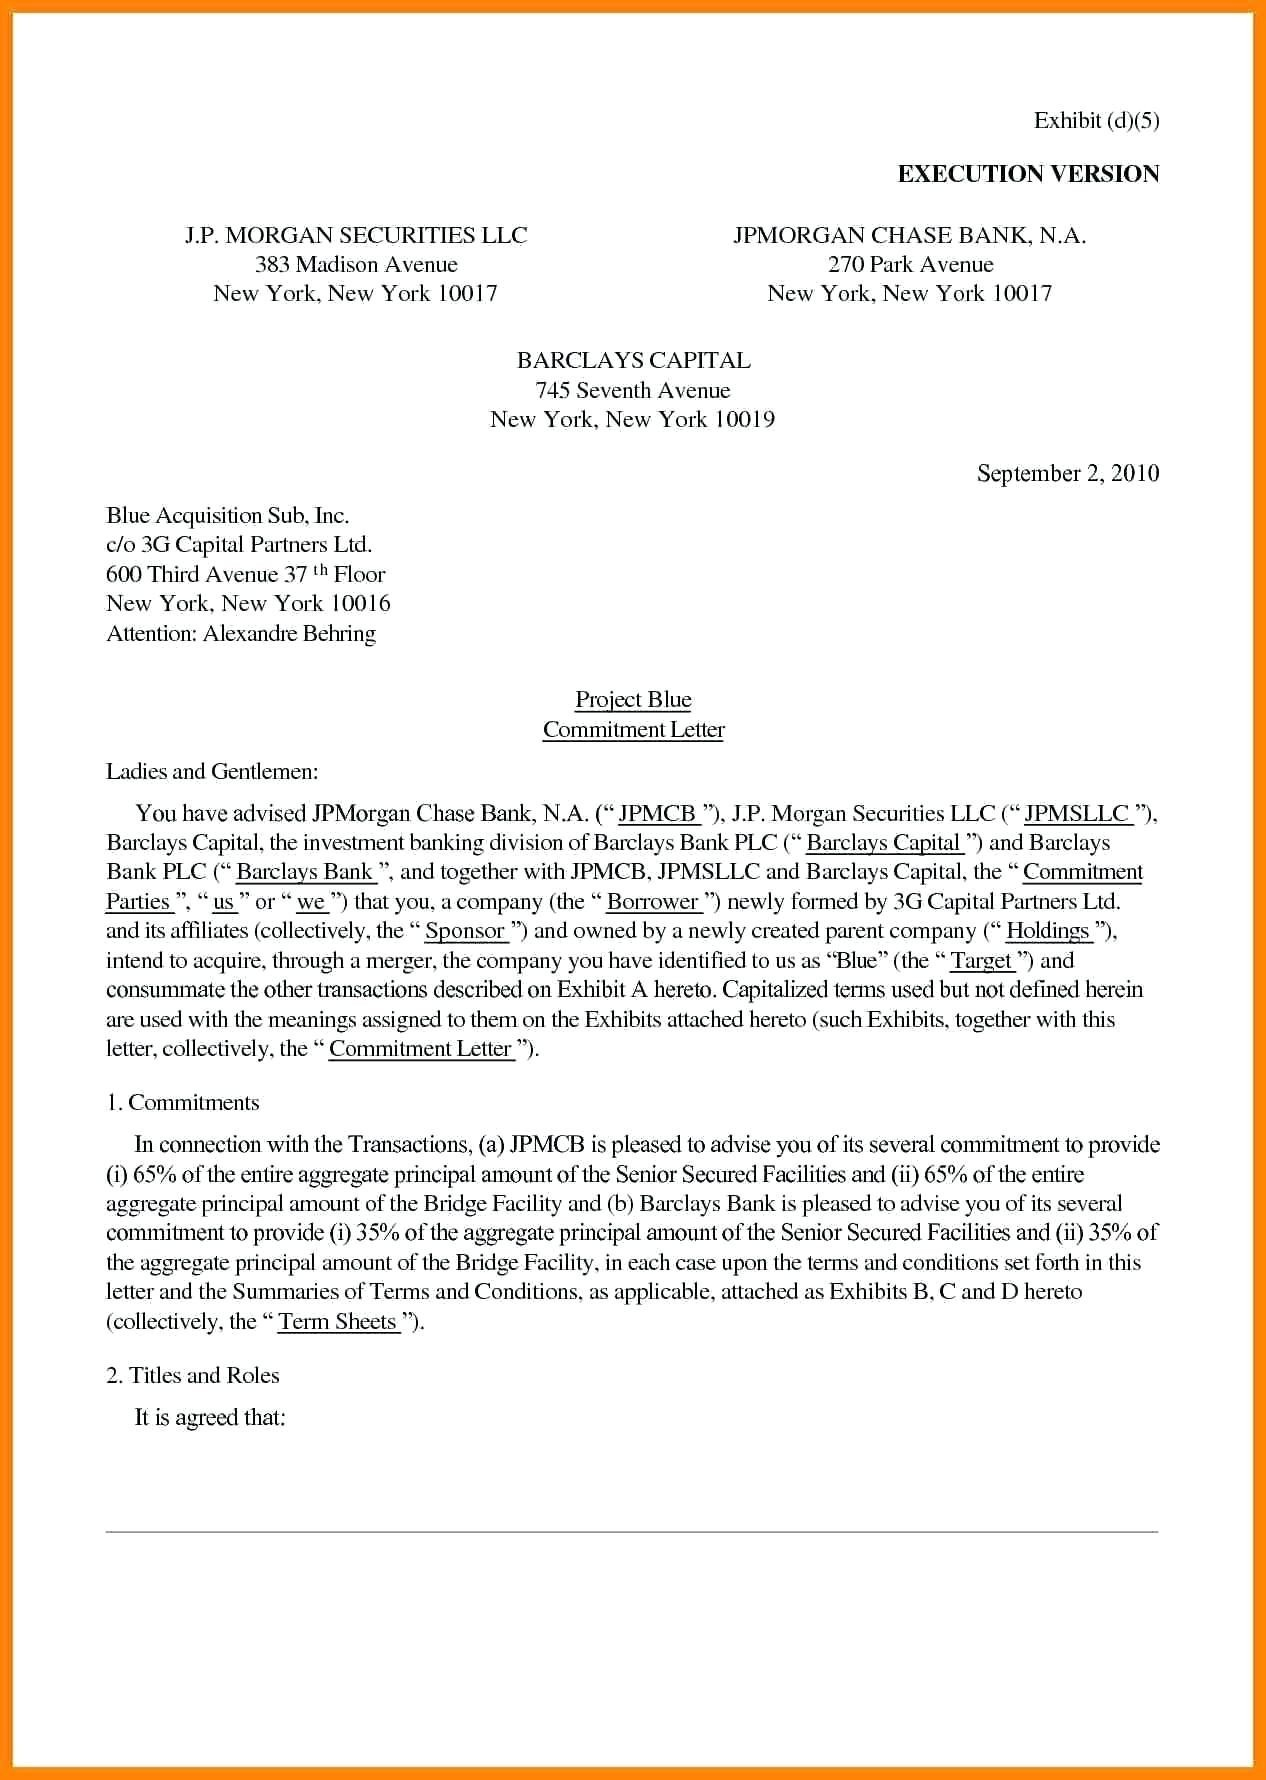 Mortgage Commitment Letter Template - Mitment Letter Sample Fresh 25 Mortgage Mitment Letter